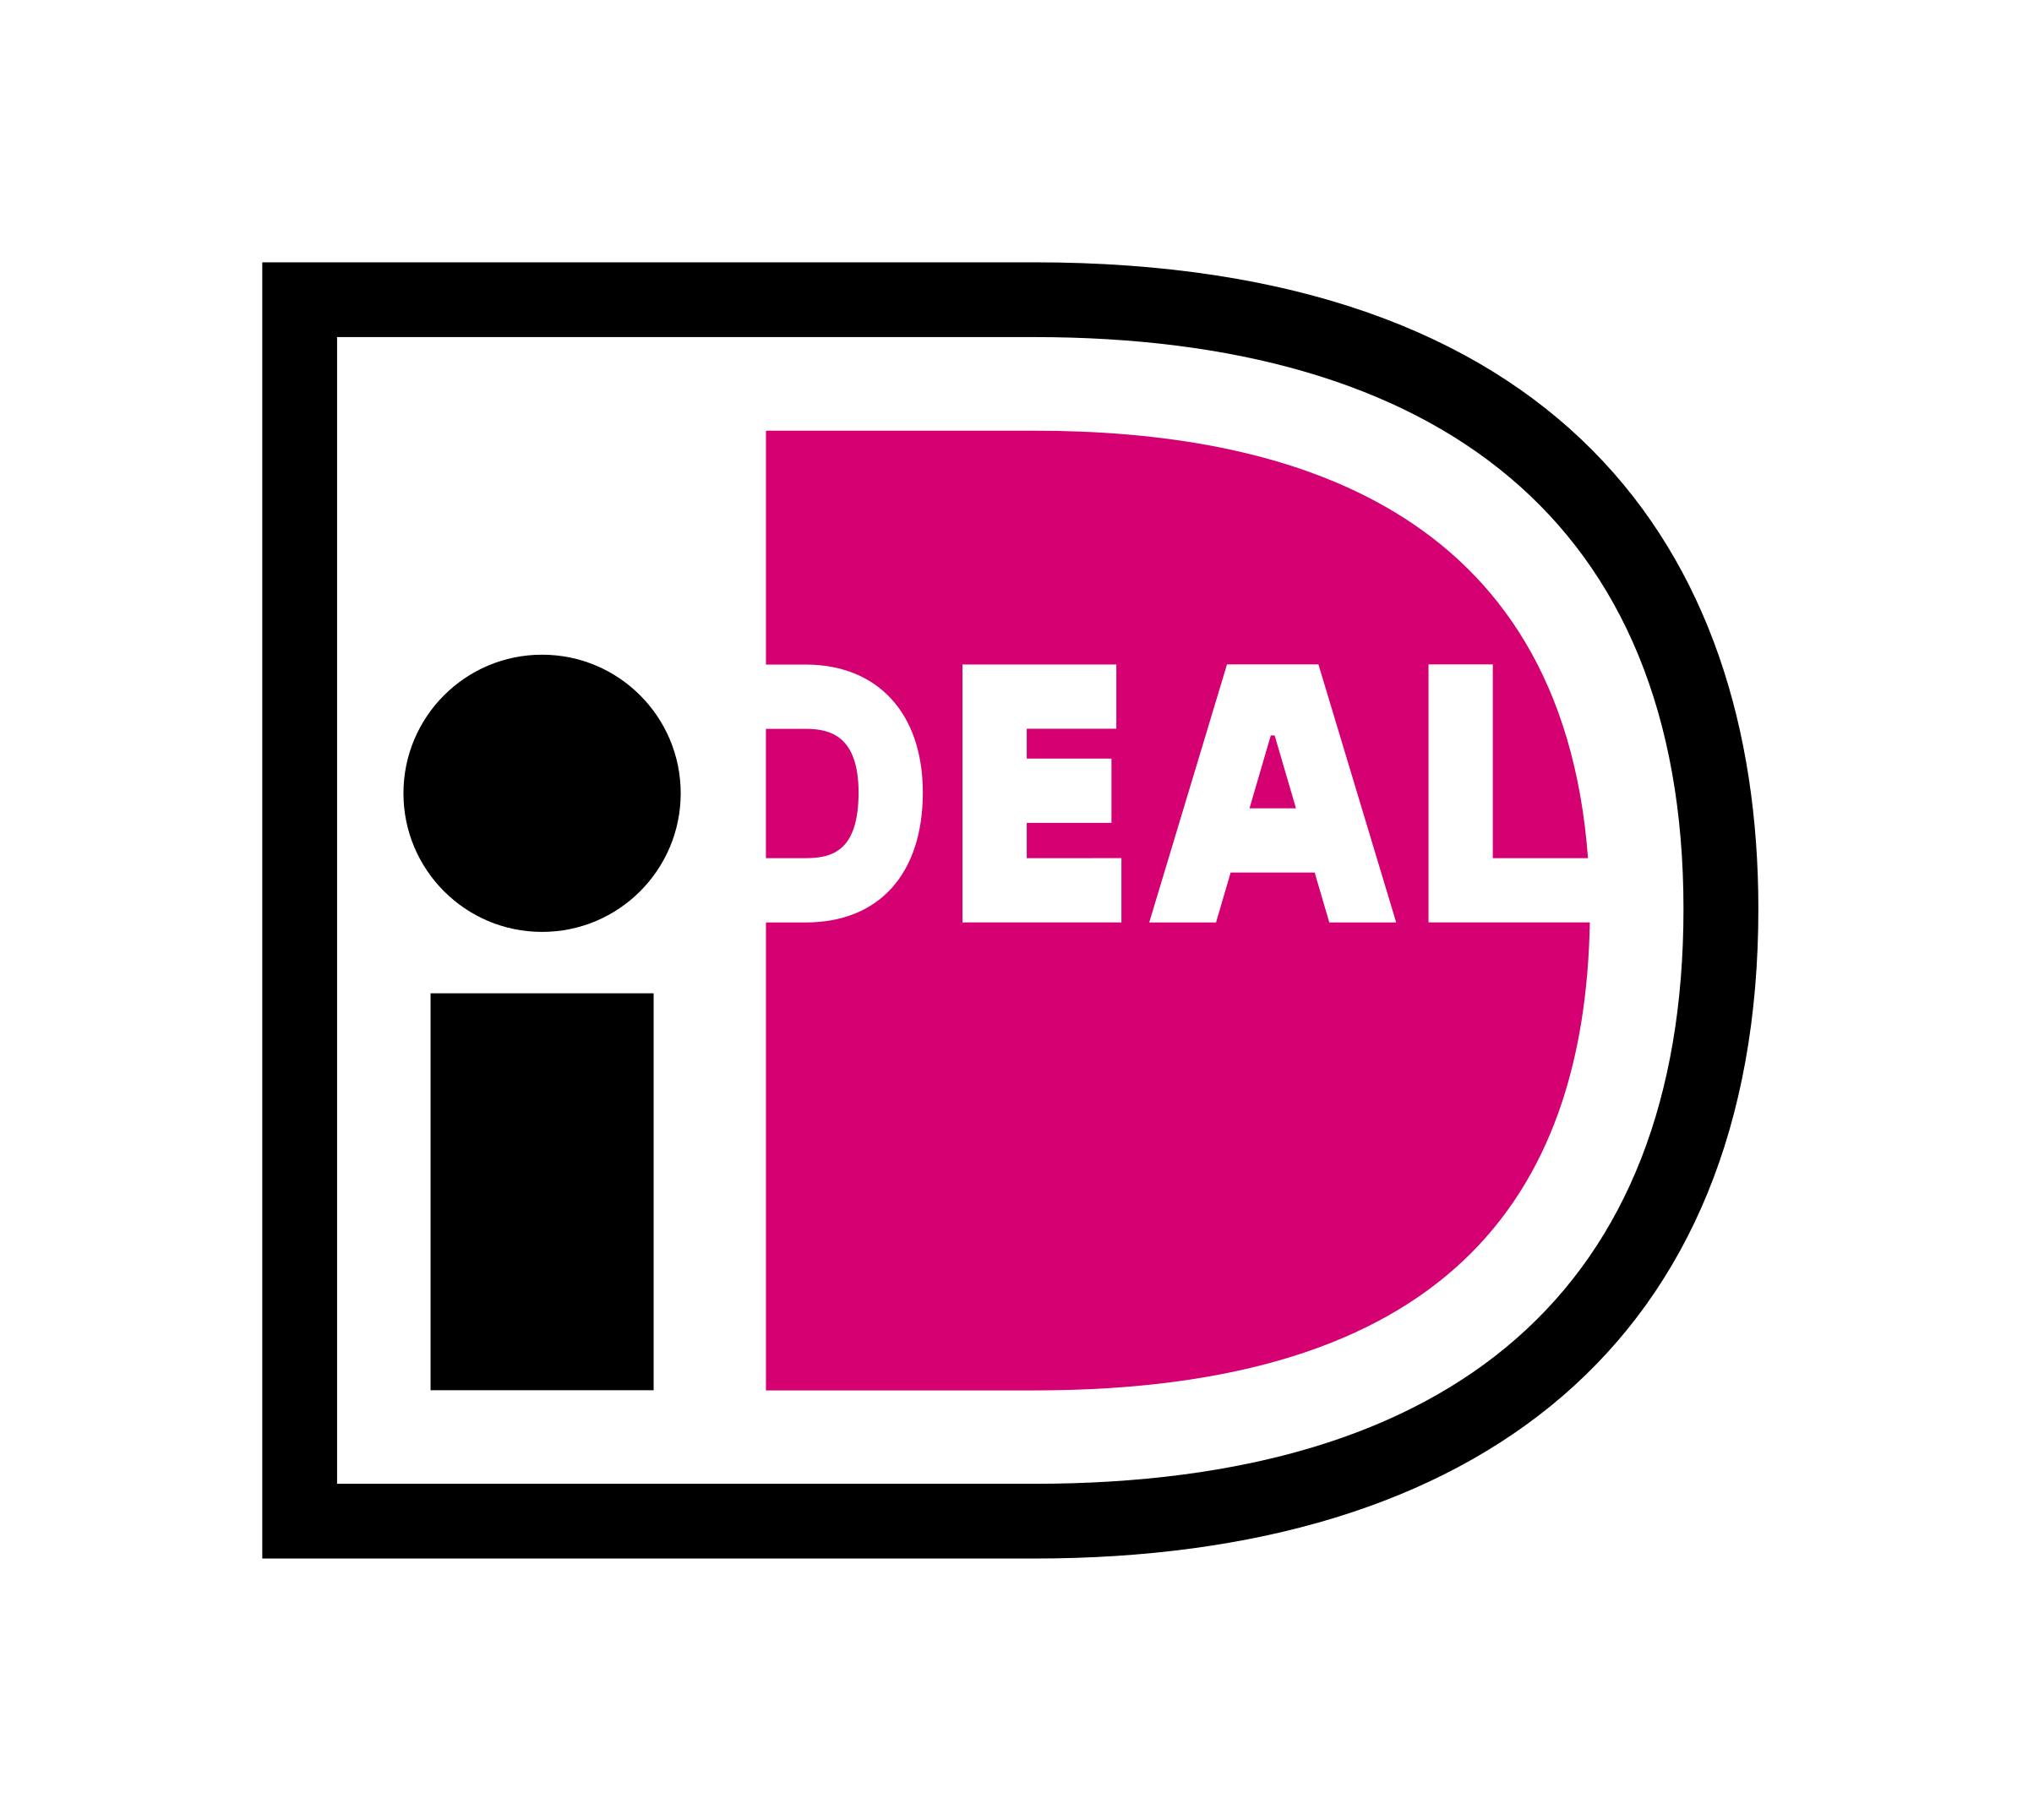 ideal-logo-png-transparent.png